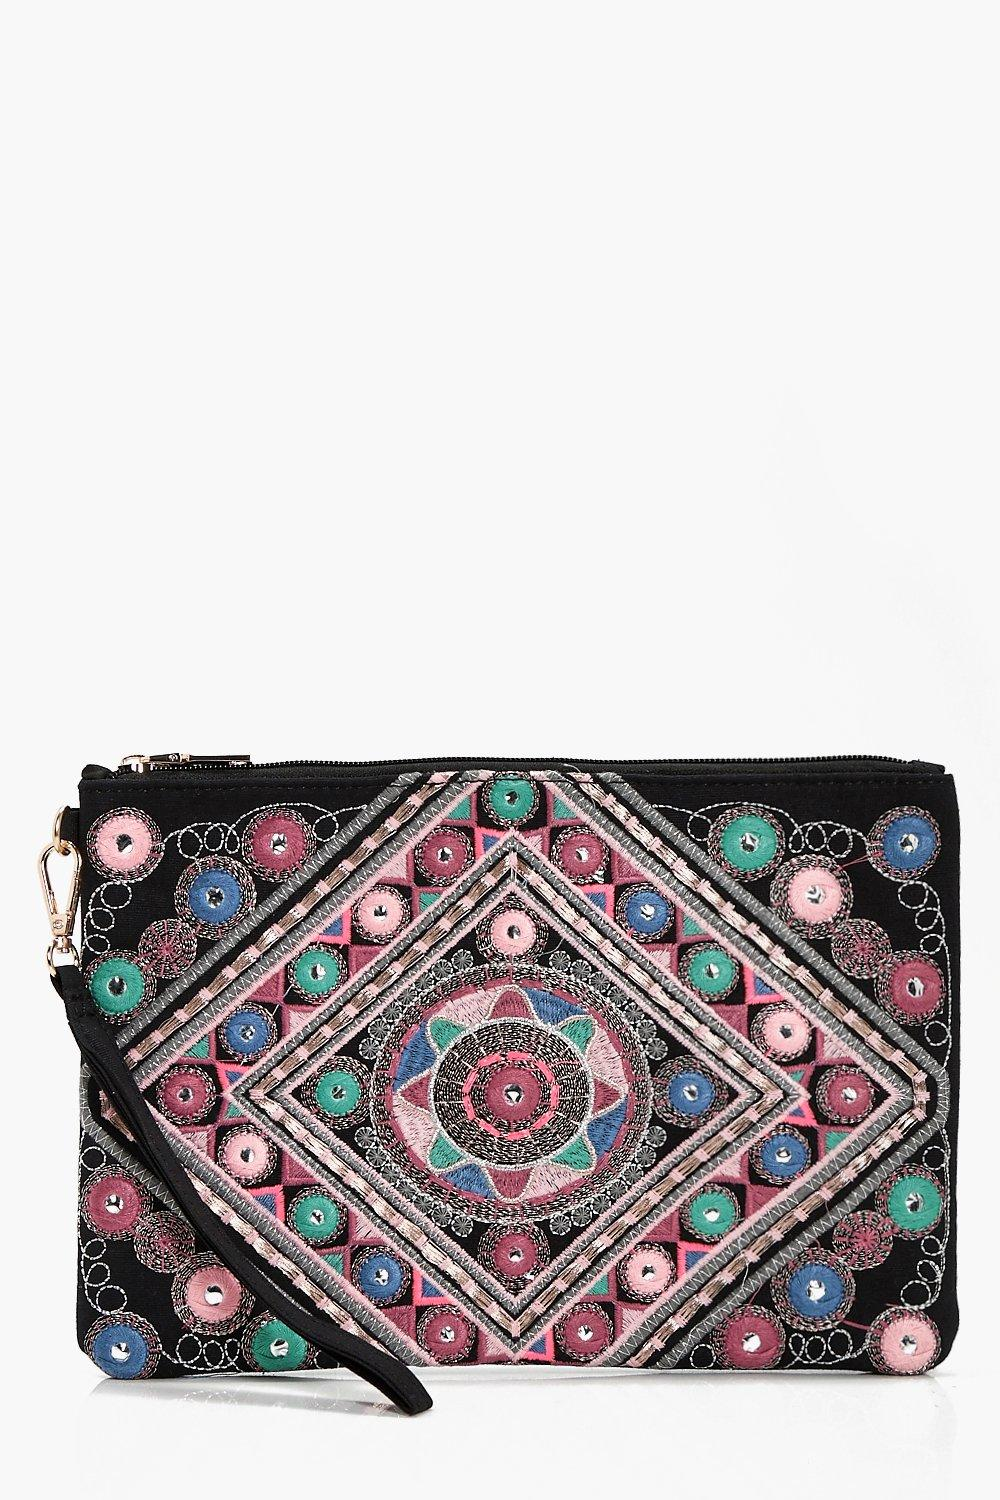 Mirrored Embroidery Oversize Clutch - black - Kate